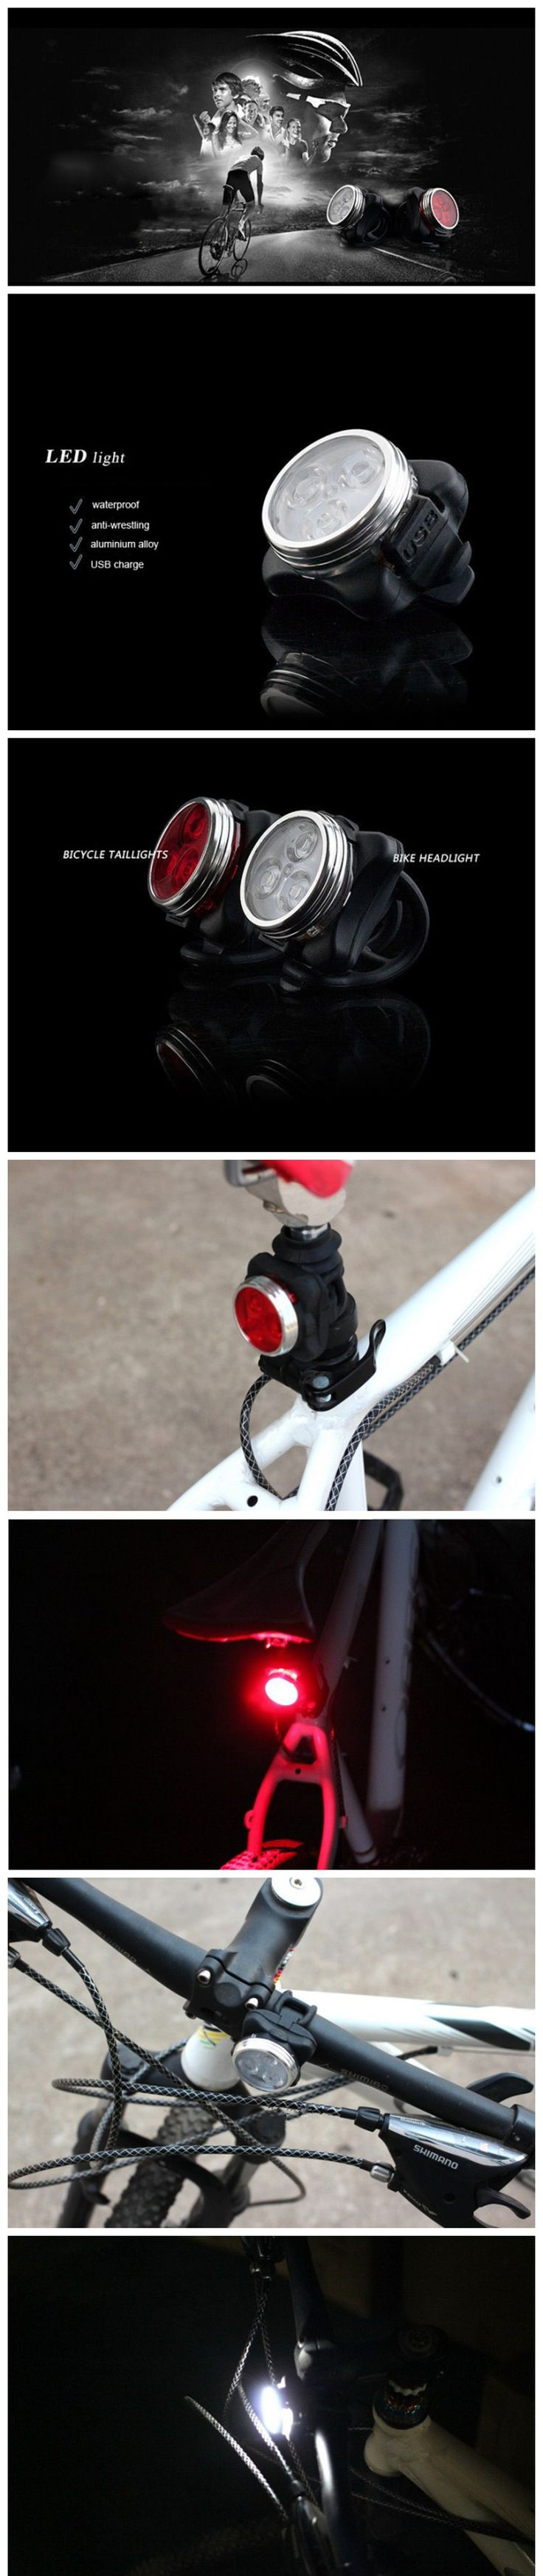 Mini White Light 4-Mode Waterproof USB Rechargeable LED Bicycle Light - Free Shipping - DealExtreme